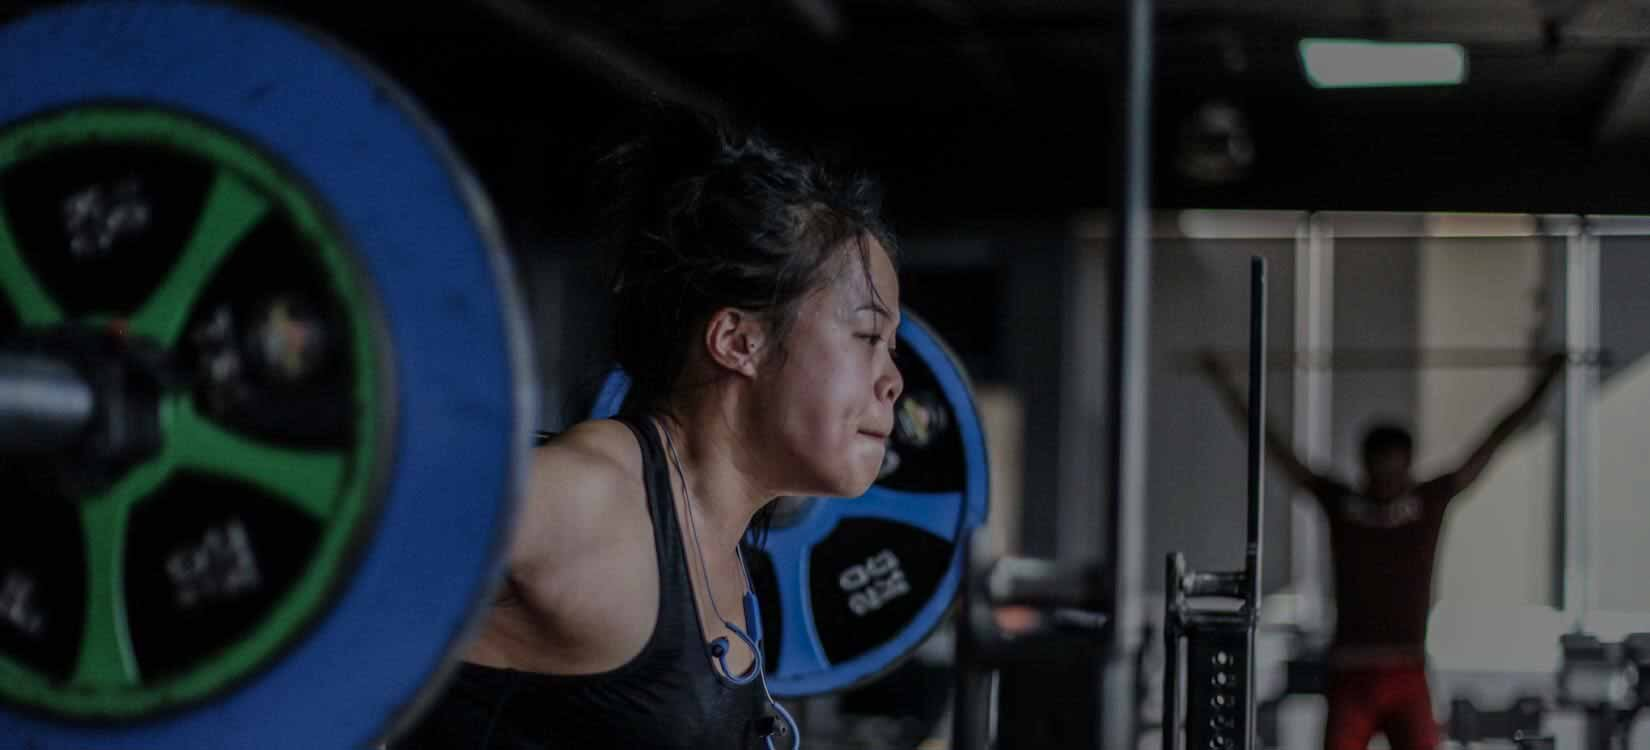 Want to learn more about CrossFit, Primal Fitness or Olympic Weightlifting?    TELL ME MORE